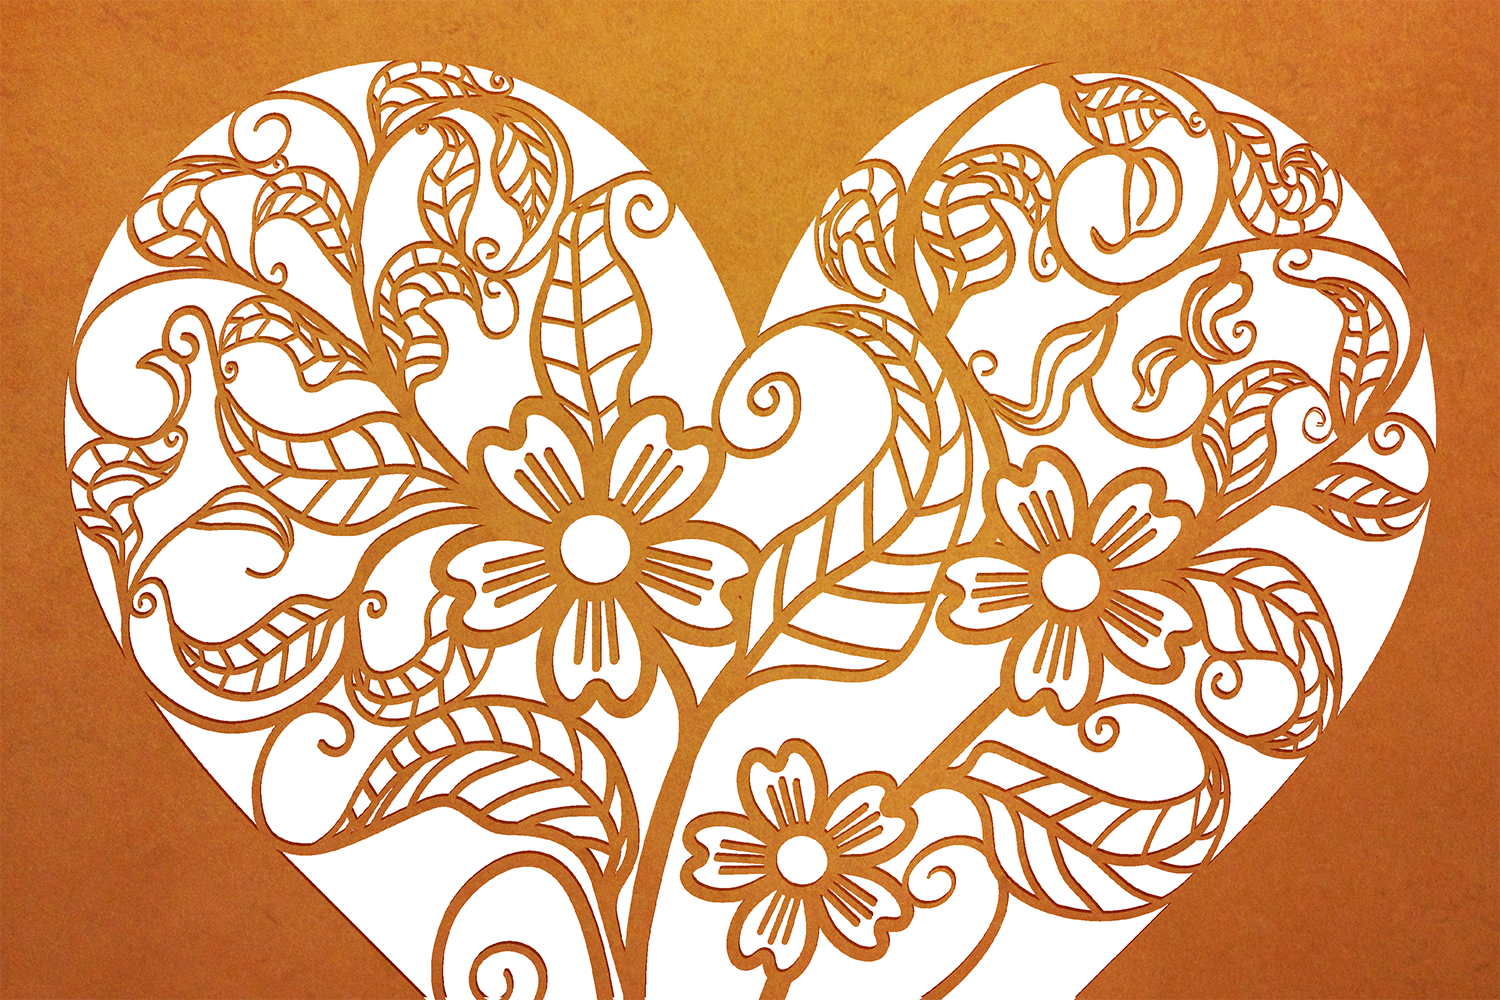 Ten Decorative Heart Cut Out Design 1 example image 4